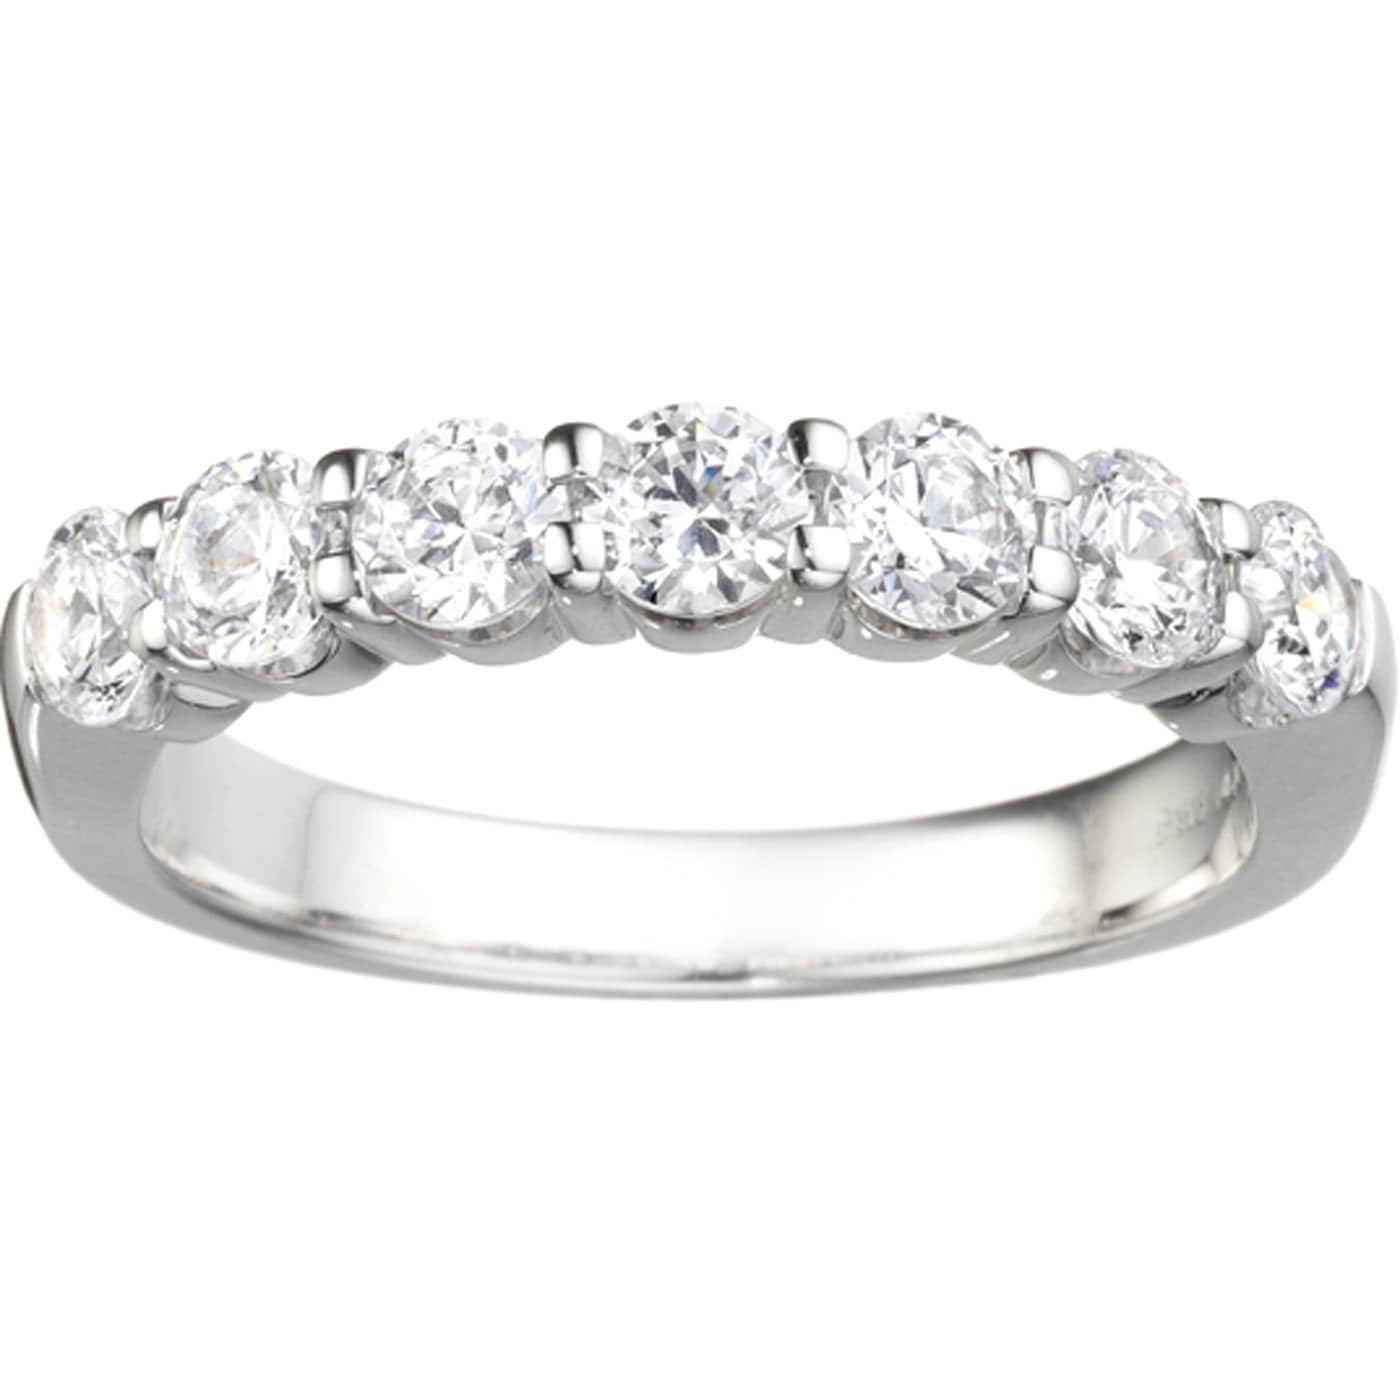 classic 7 stone band 42ct shared prong cubic zirconia set in